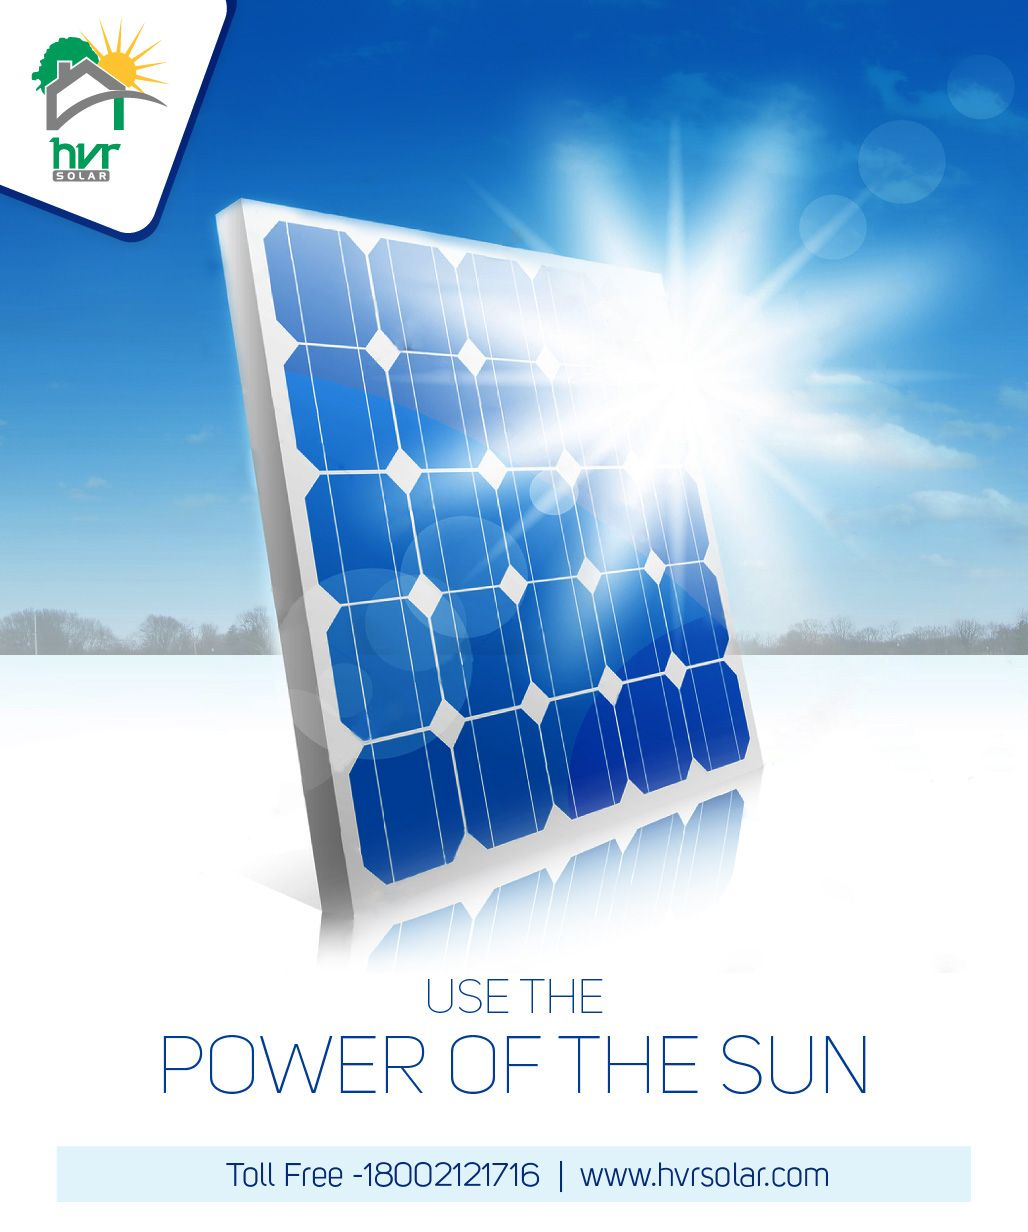 Hvr Solar Pvt Ltd Are Manufacturer Of Solar Products For Commercial And Residential Purpose S Solar Energy Projects Solar Thermal Energy Solar Power Energy